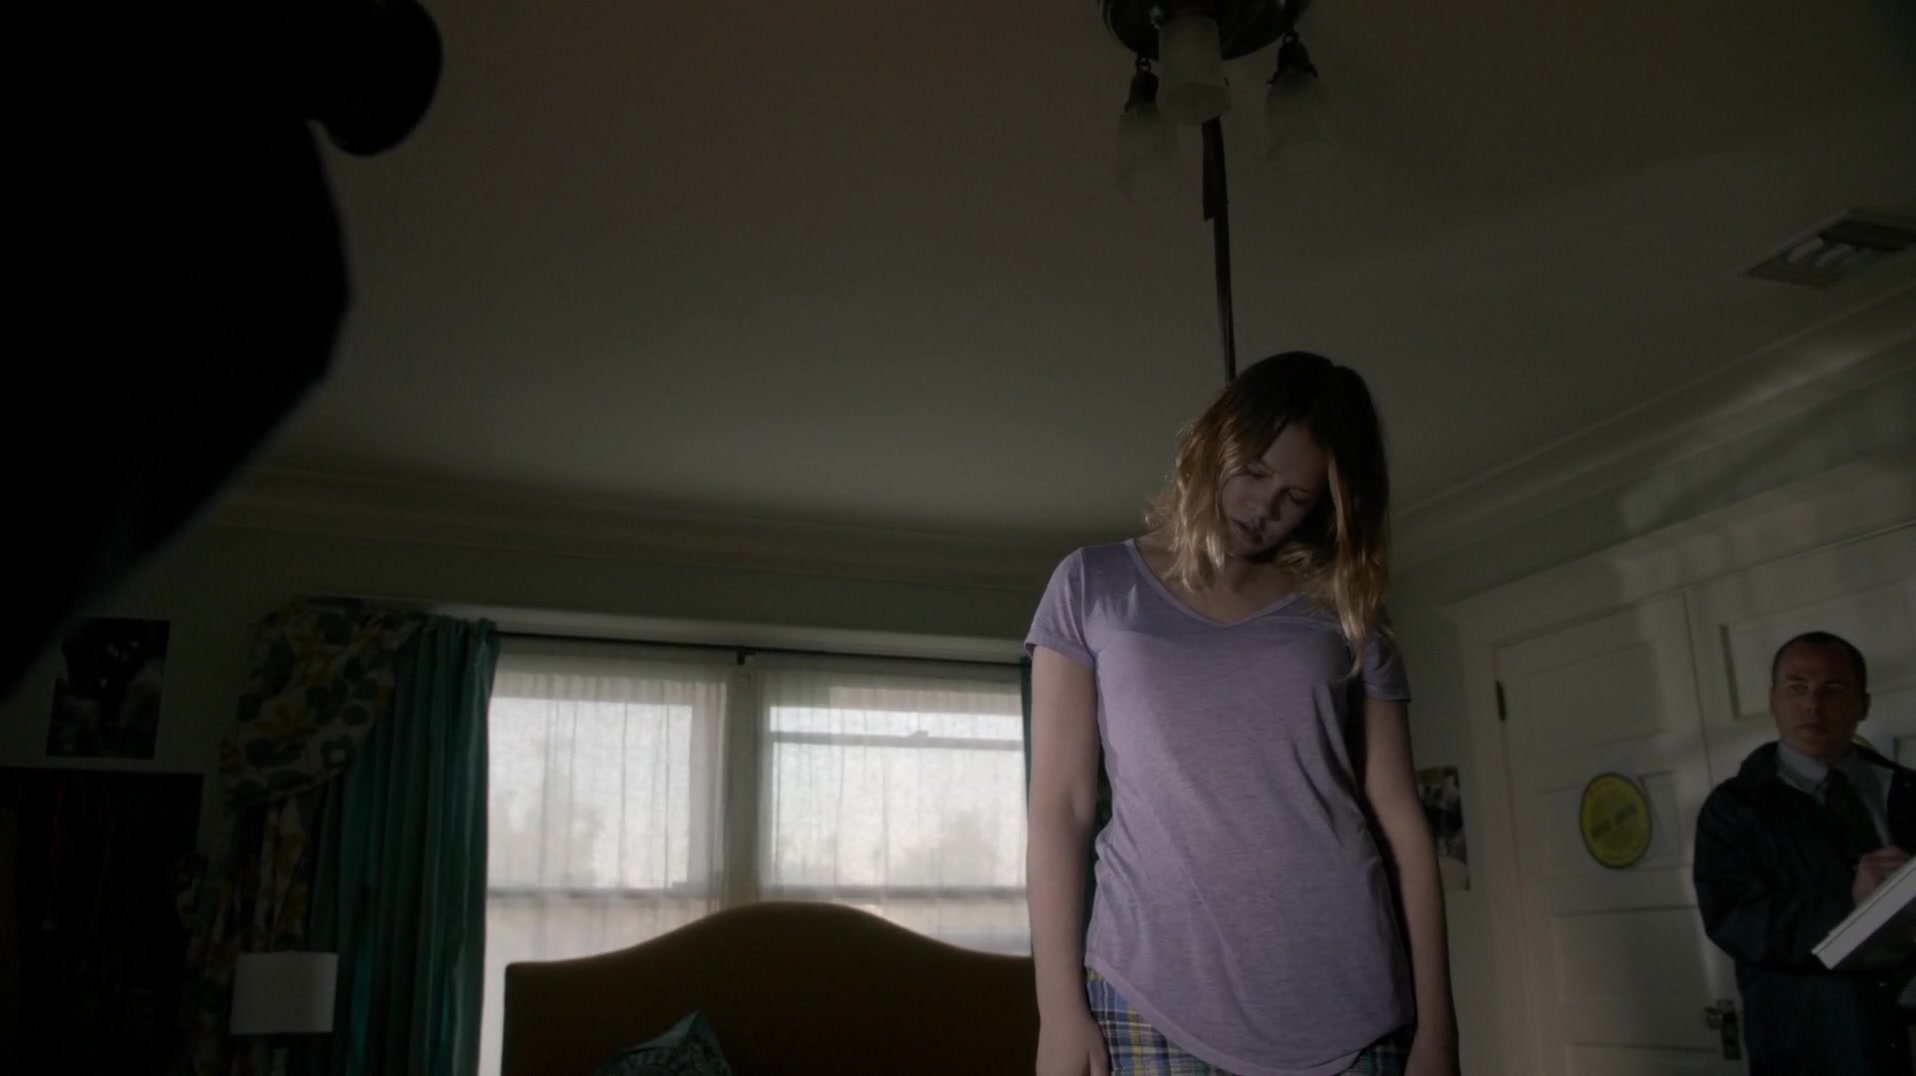 Rachel S Lifeless Is Removed From The Balcony And Her Neck Now Wrapped With Rope Hanging Ceiling Fan In Bedroom For